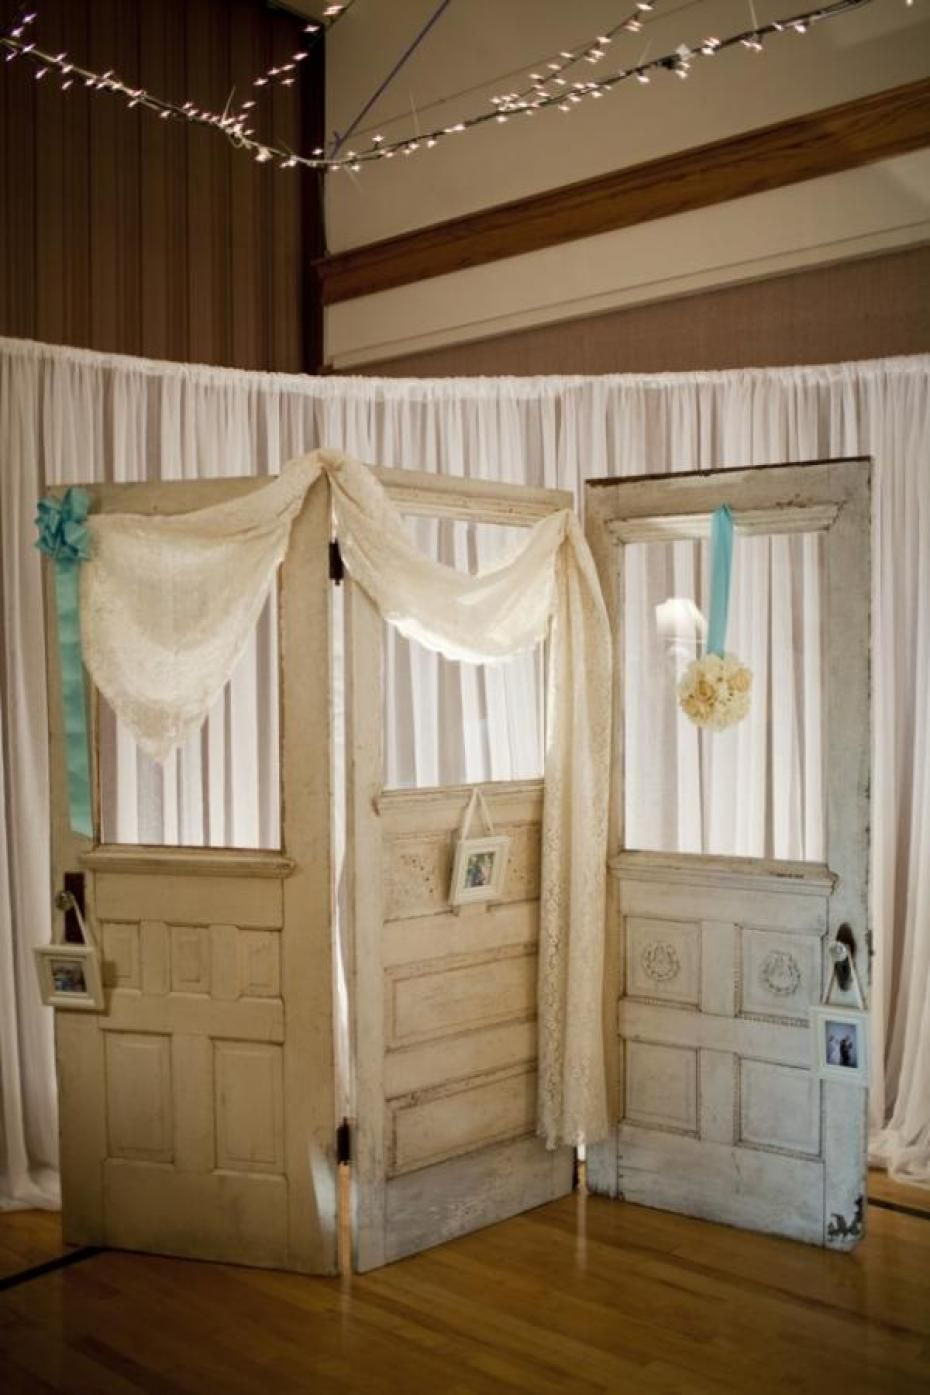 wooden door wedding backdrop | gallery | Lasting Impressions & wooden door wedding backdrop | gallery | Lasting Impressions ...